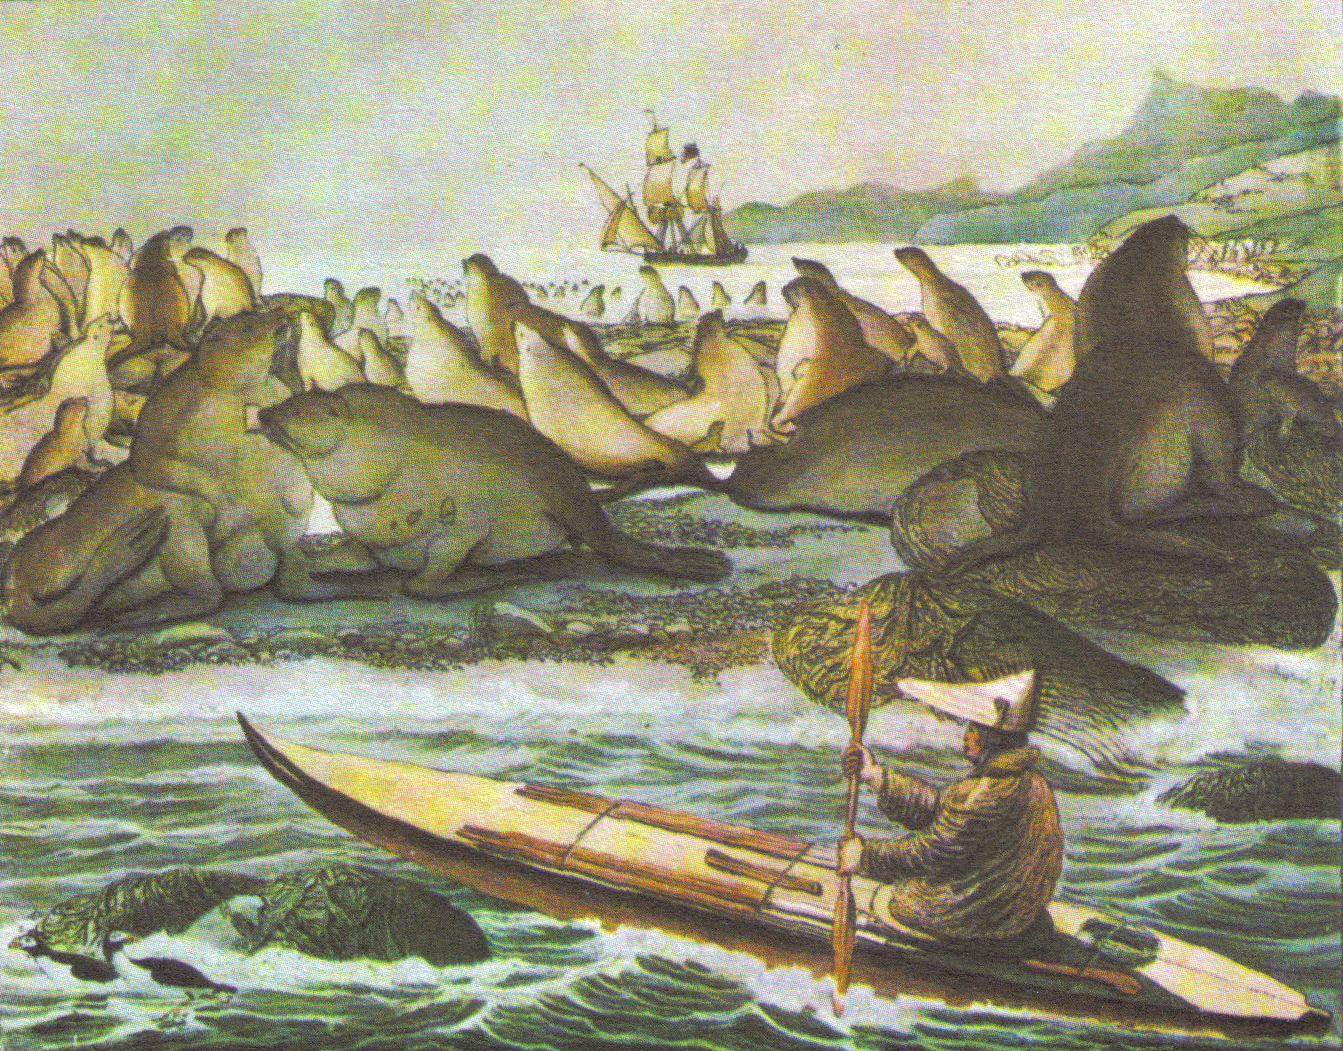 Artist Louis Choris accompanied the Kotzebue expedition on the Rurik, the ship shown in the background. This image of an A'lutik hunter off St. Paul's Island in the Bering Sea shows a (foreshortened) kayak. The Russians both coerced and hired them to hunt otters for their pelts, which the A'lutik did so efficiently that nearly the entire otter population of California was destroyed. Many hunters at Fort Ross drowned..